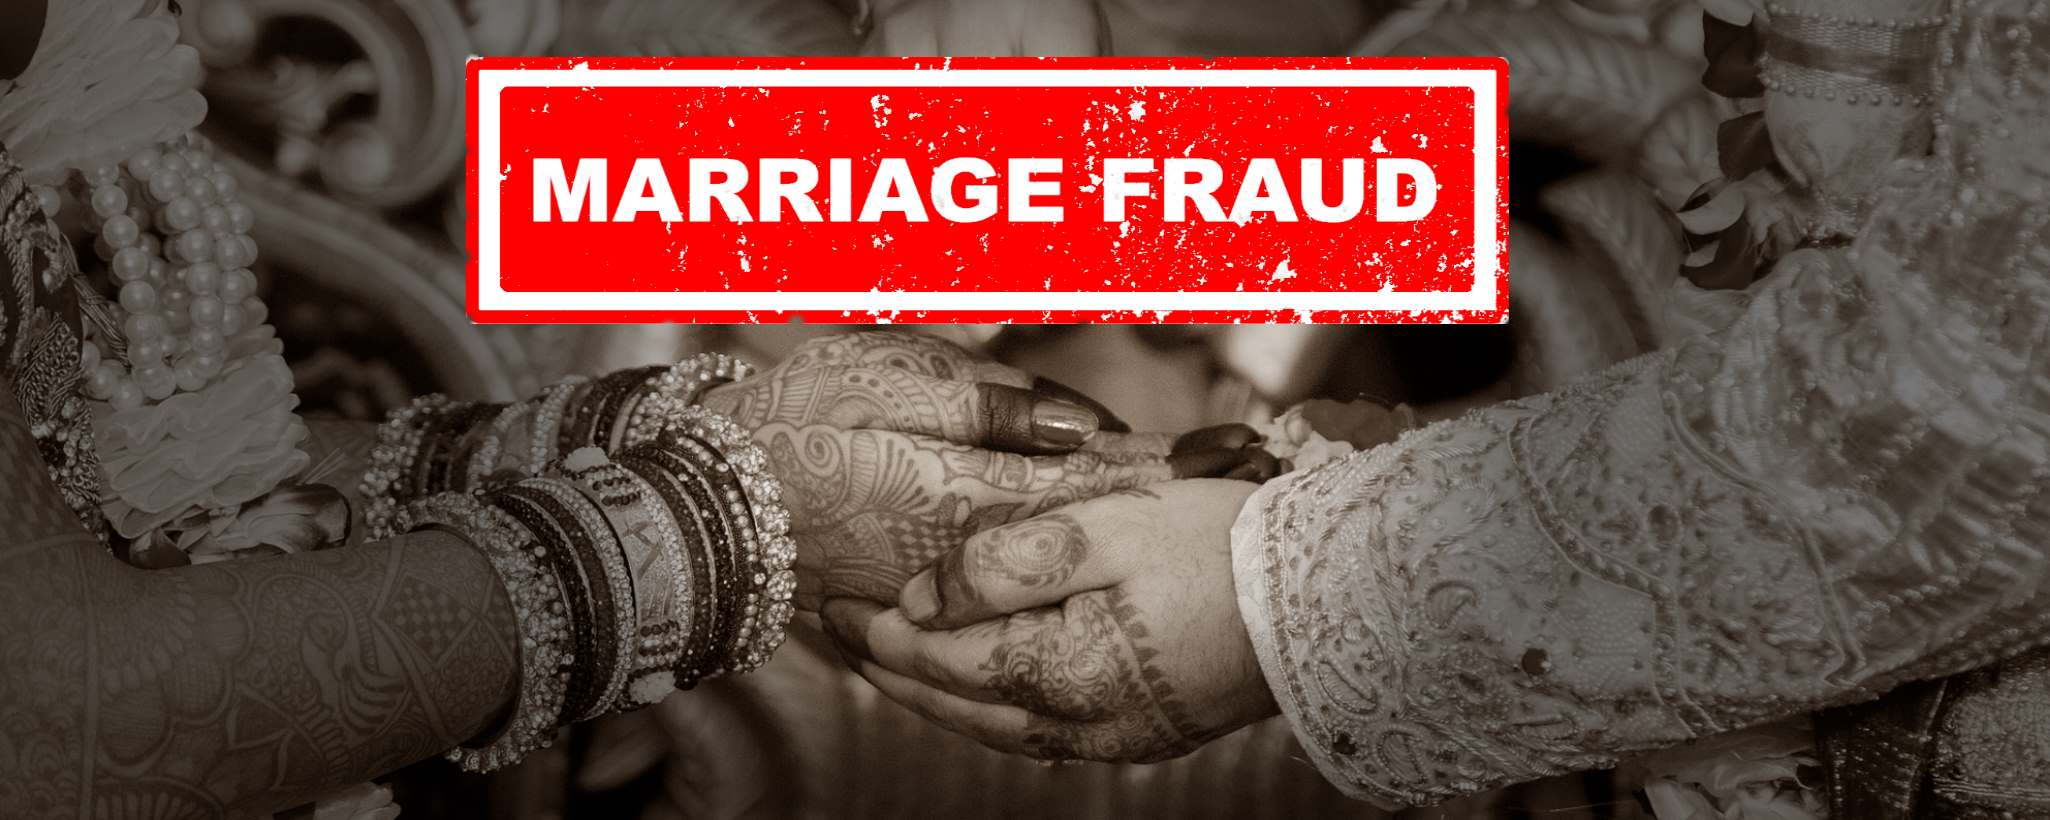 Immigration Fraud Marriage in Canada